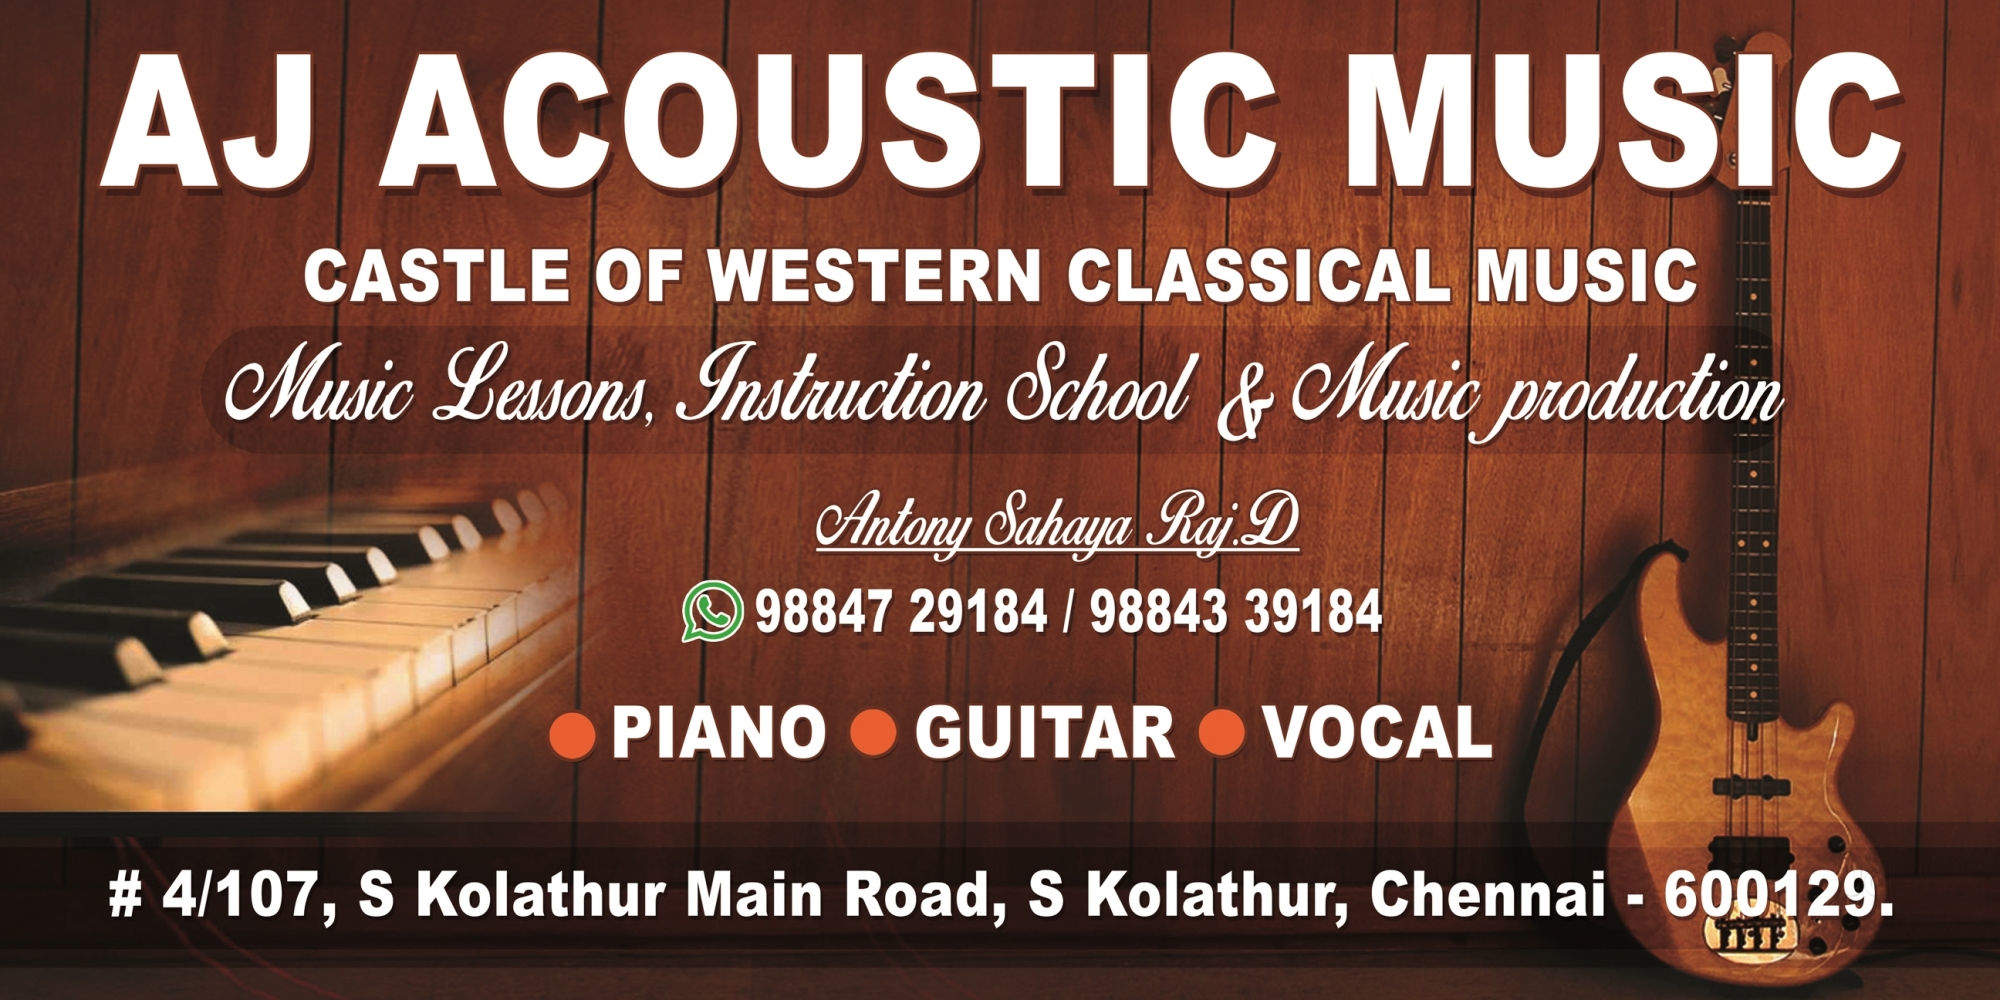 Top 10 Online Classical Music Classes in S Kolathur - Best